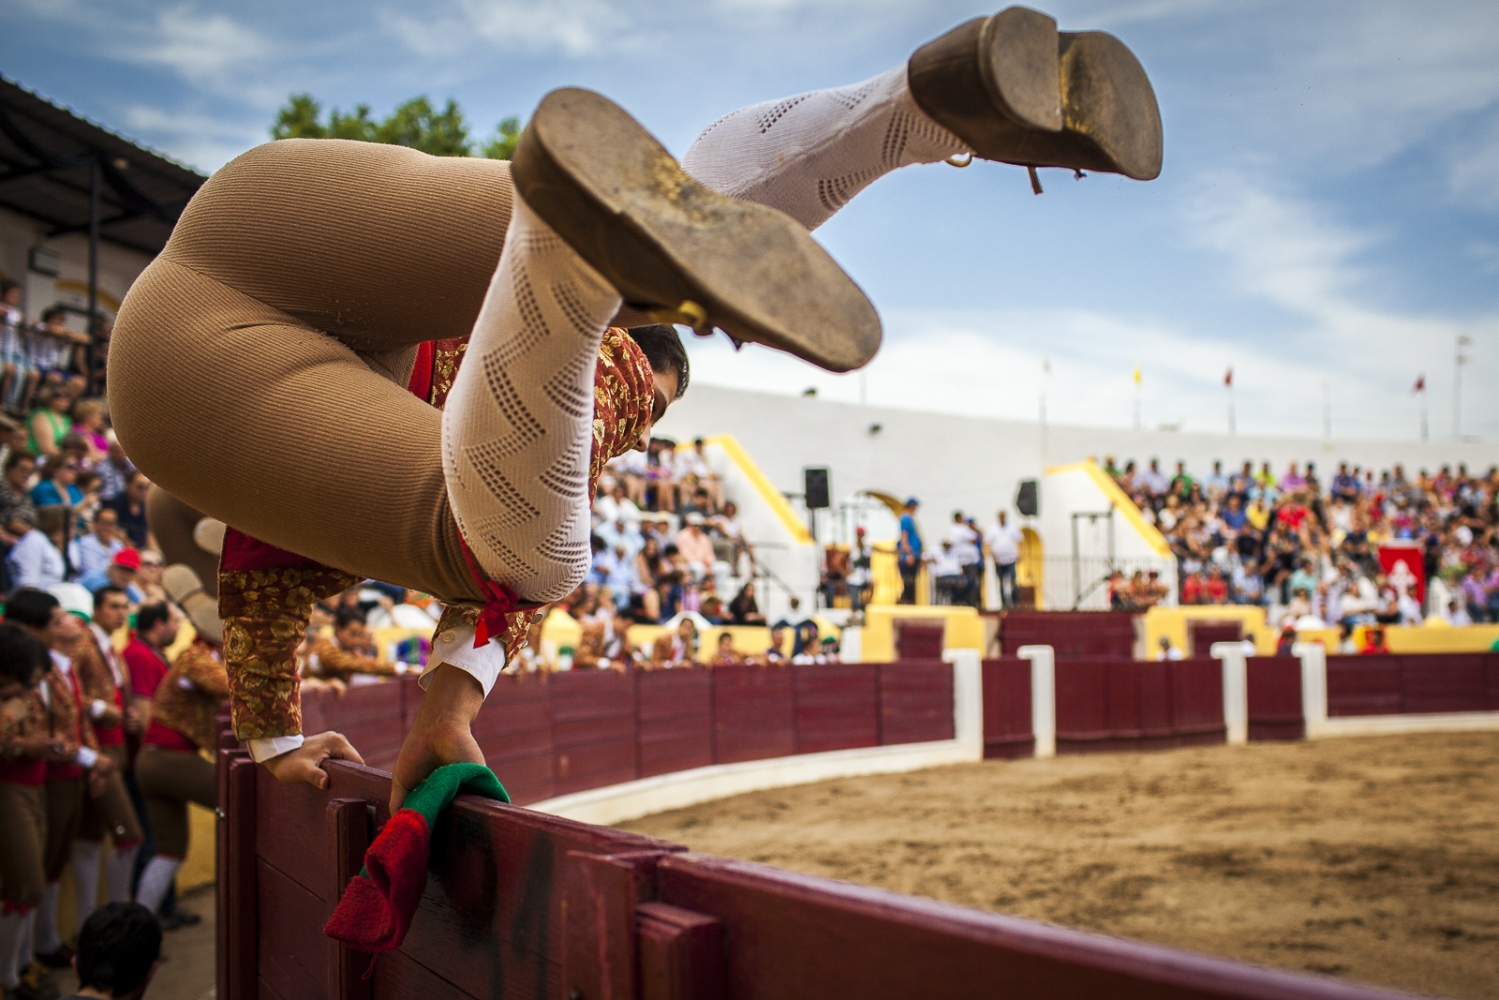 Forcado jumps the trenches to enter in the arena. They try to make it as  artistic as possible, since its one of the most important rituals before the 'pega' or head catch of the bull. Unlike in Spain, where the bull is stabbed to death if the matador manages to win the contest, the forcados wrestle the animal with their bare hands as a display of determination and bravura.